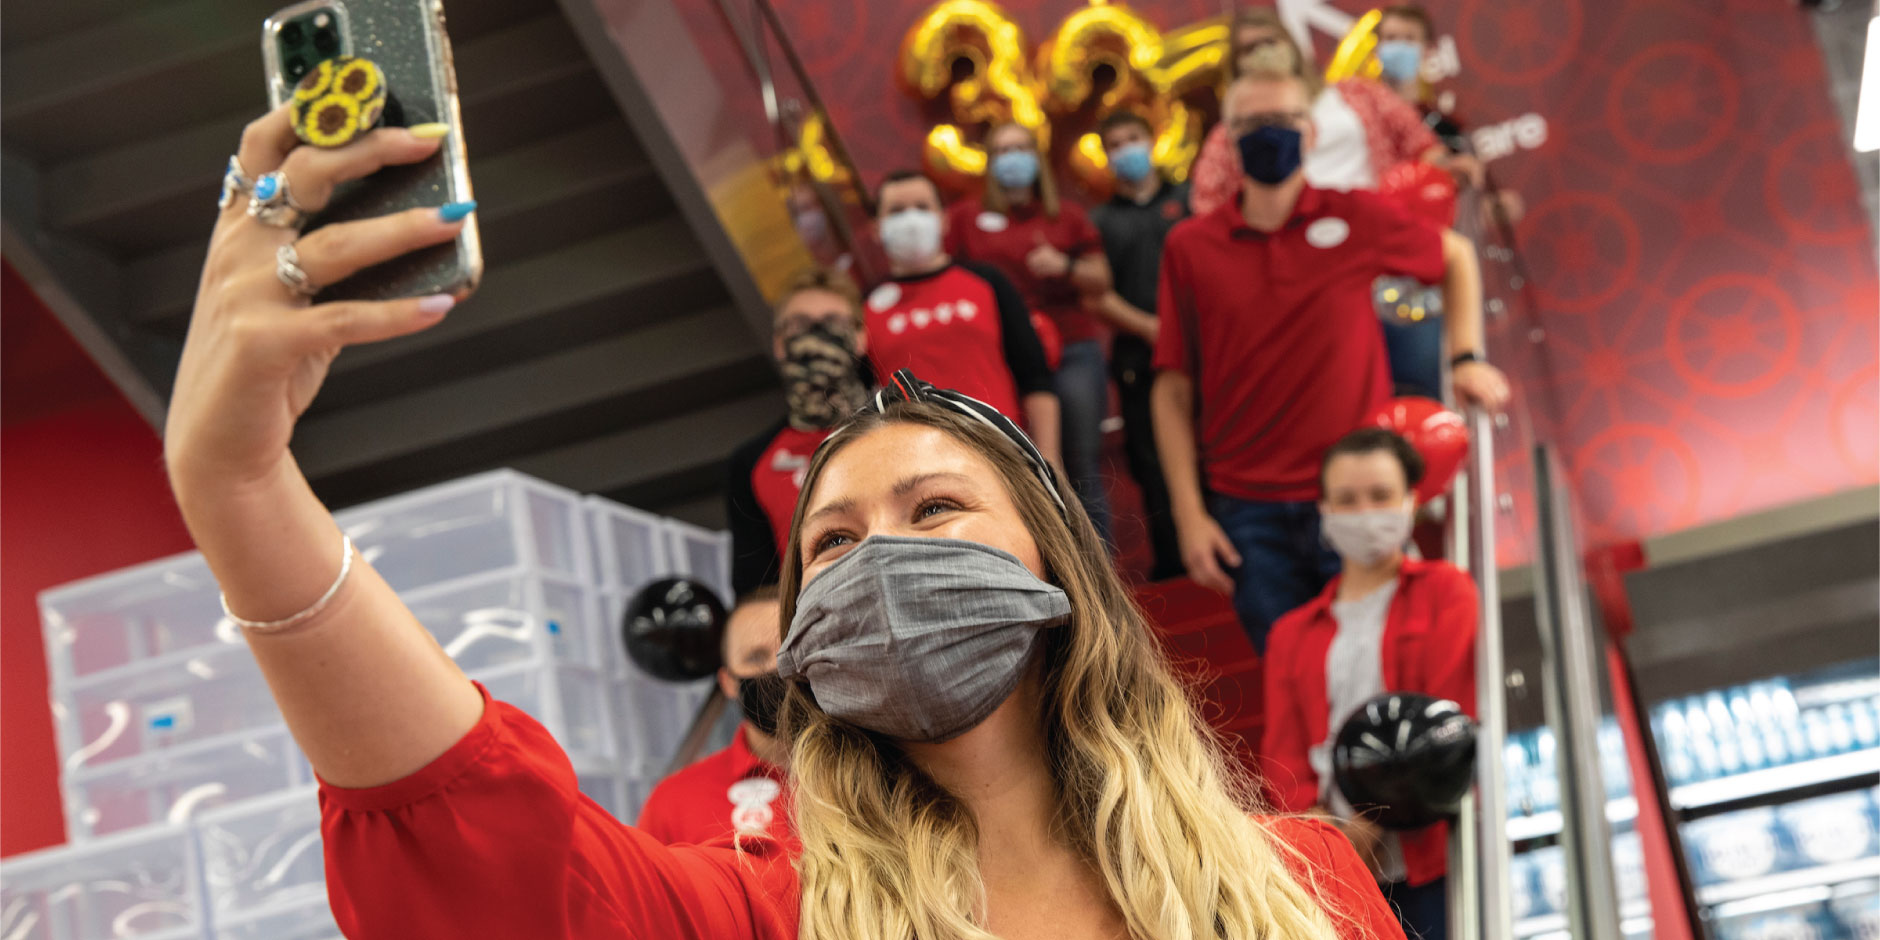 A team member wearing a red shirt and grey face mask takes a socially-distanced selfie with a group of team members on an escalator behind her